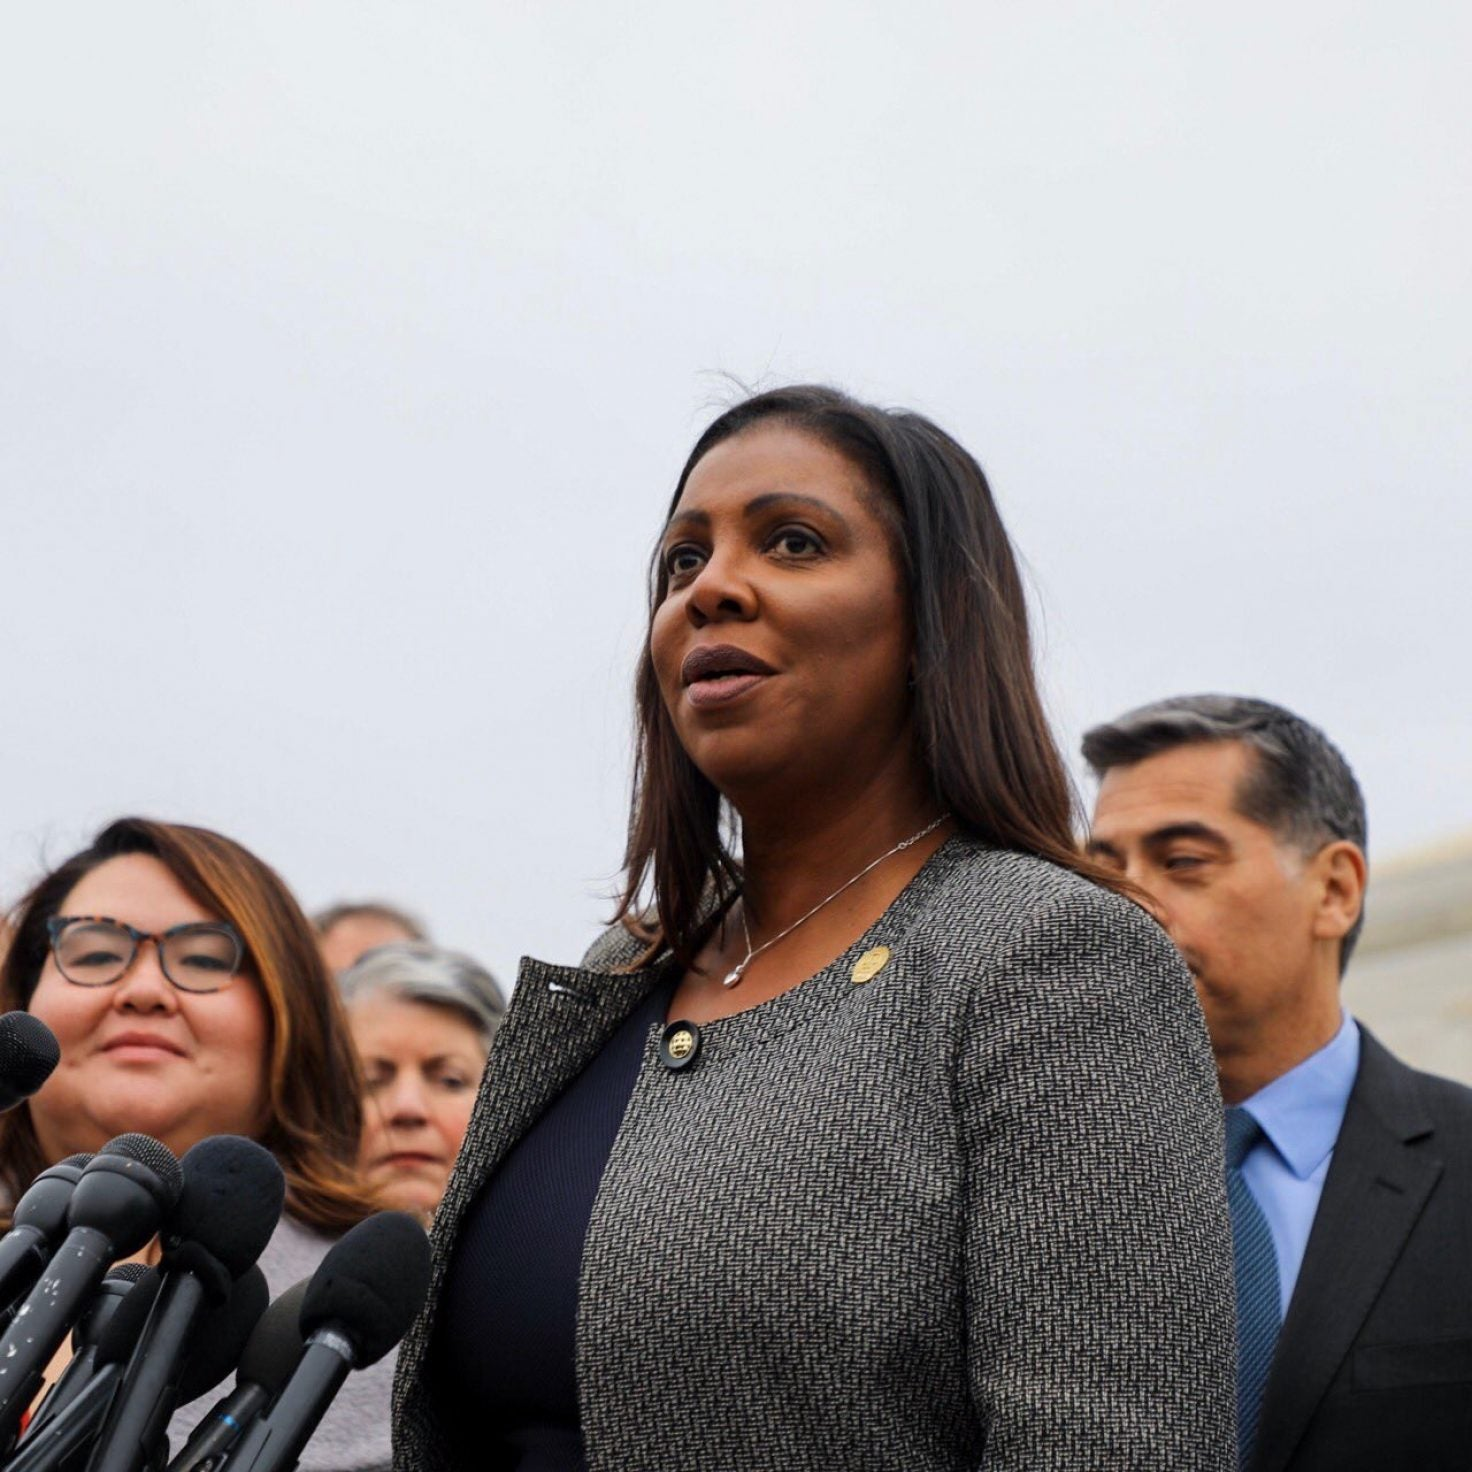 New York Attorney General Letitia James Is Still The 'People's Lawyer'